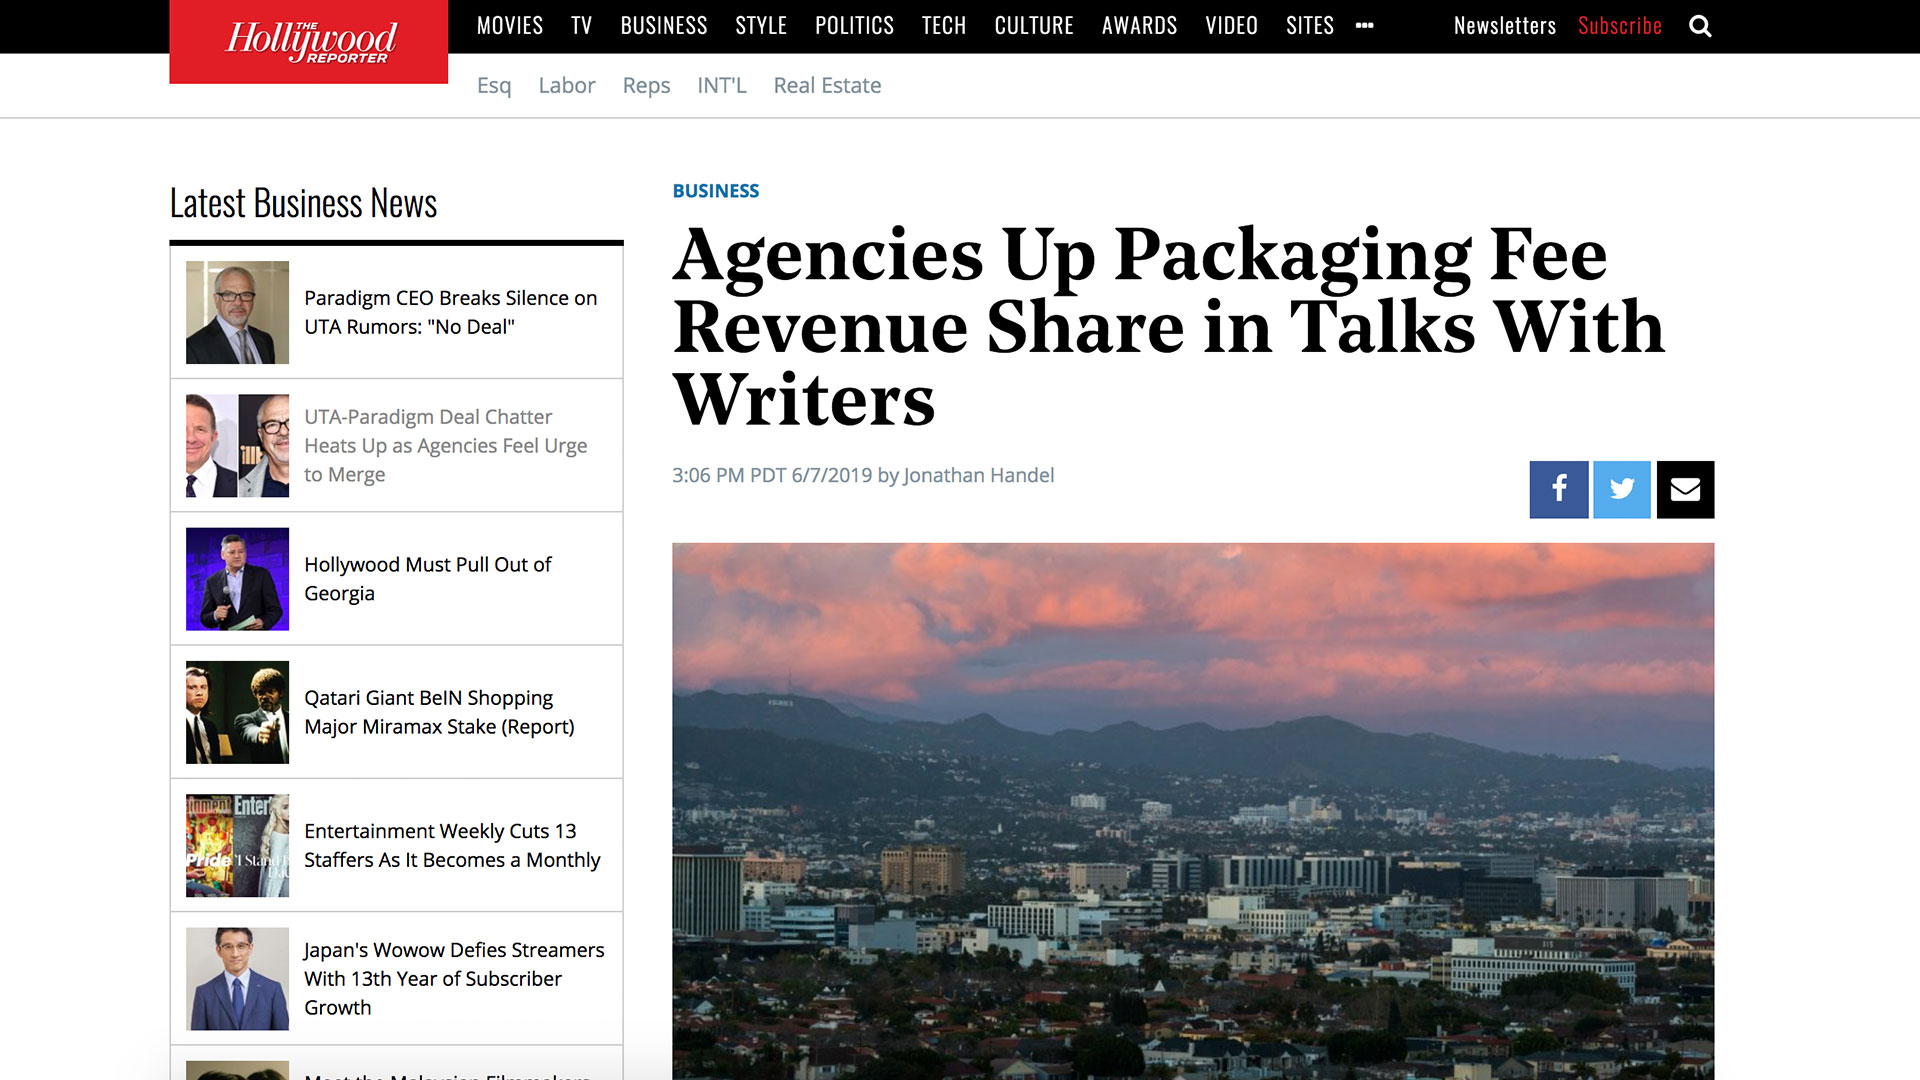 Fairness Rocks News Agencies Up Packaging Fee Revenue Share in Talks With Writers